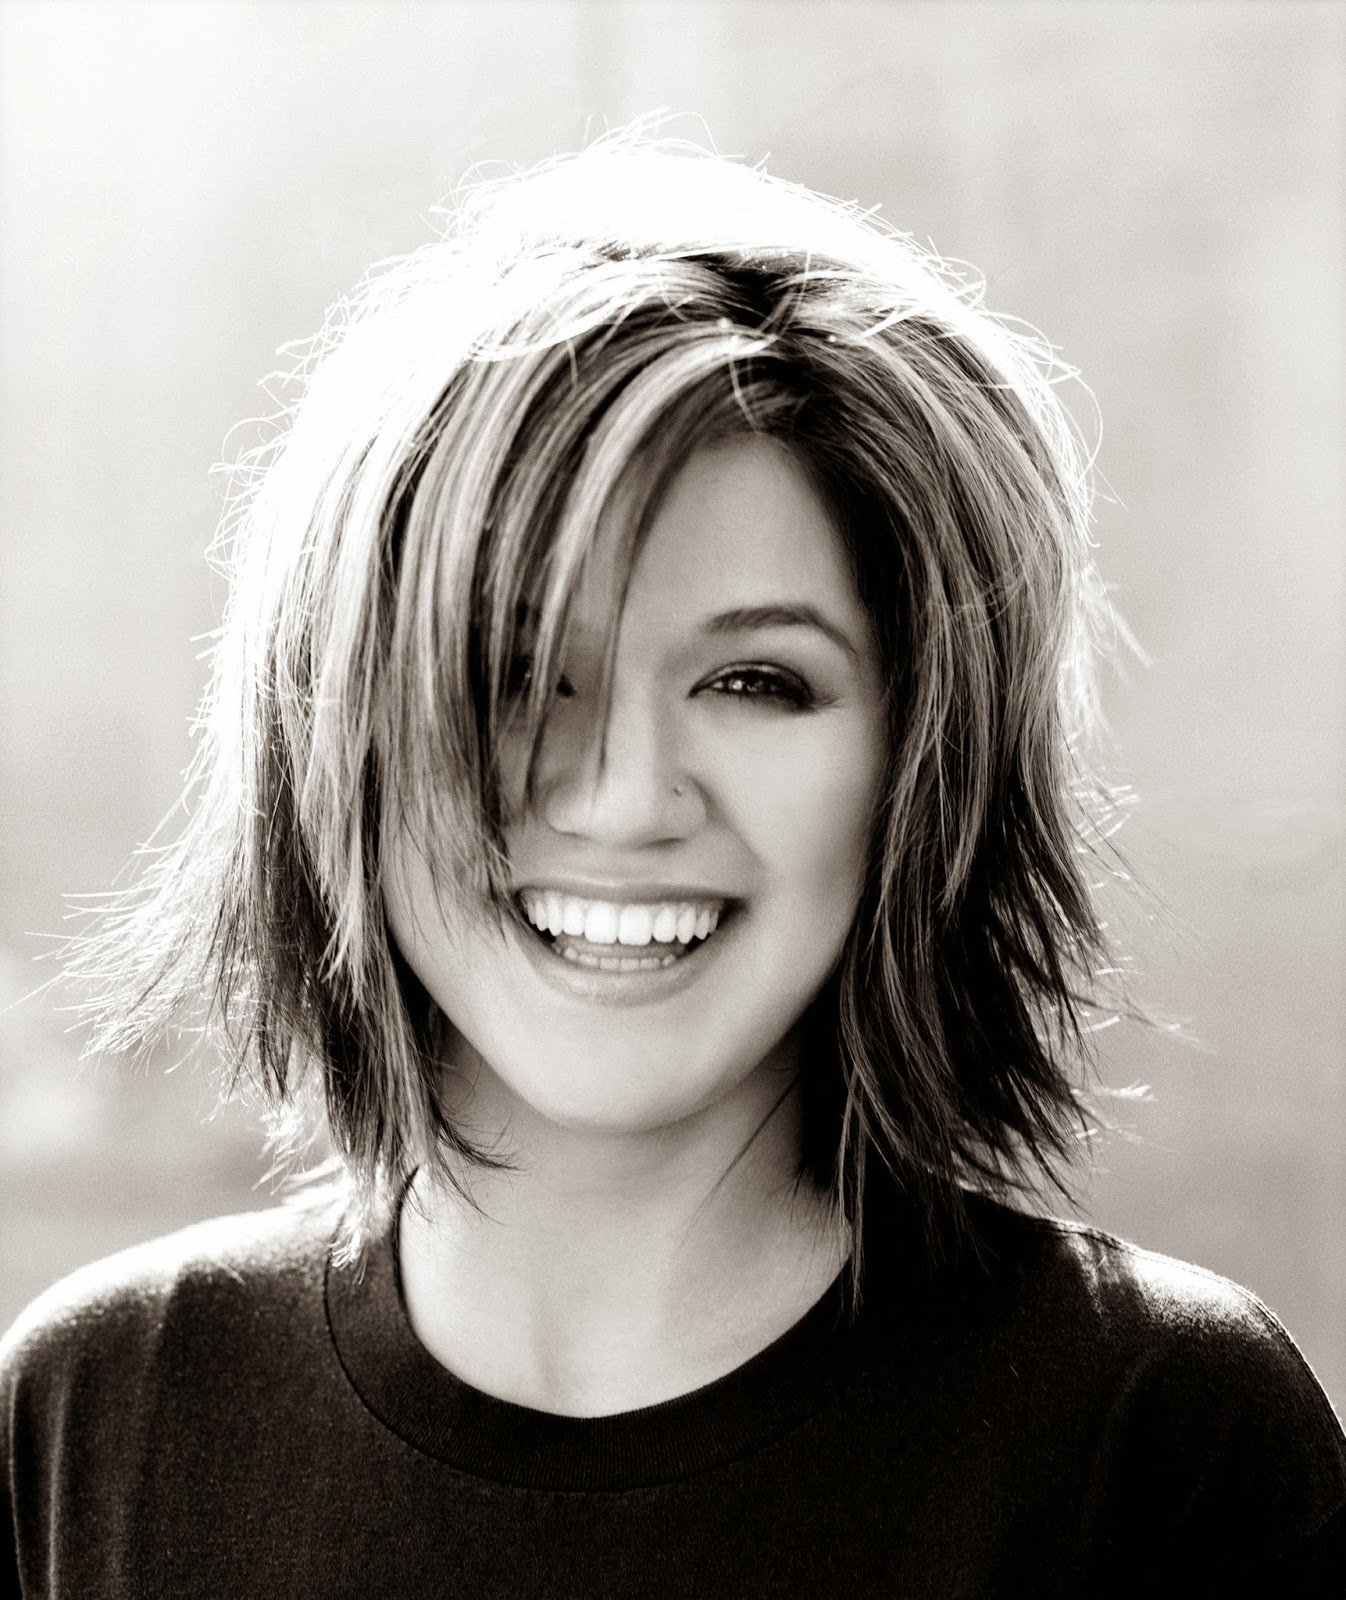 The Best Happy Birthday To The Beautiful Kelly Clarkson Lattouf Pictures